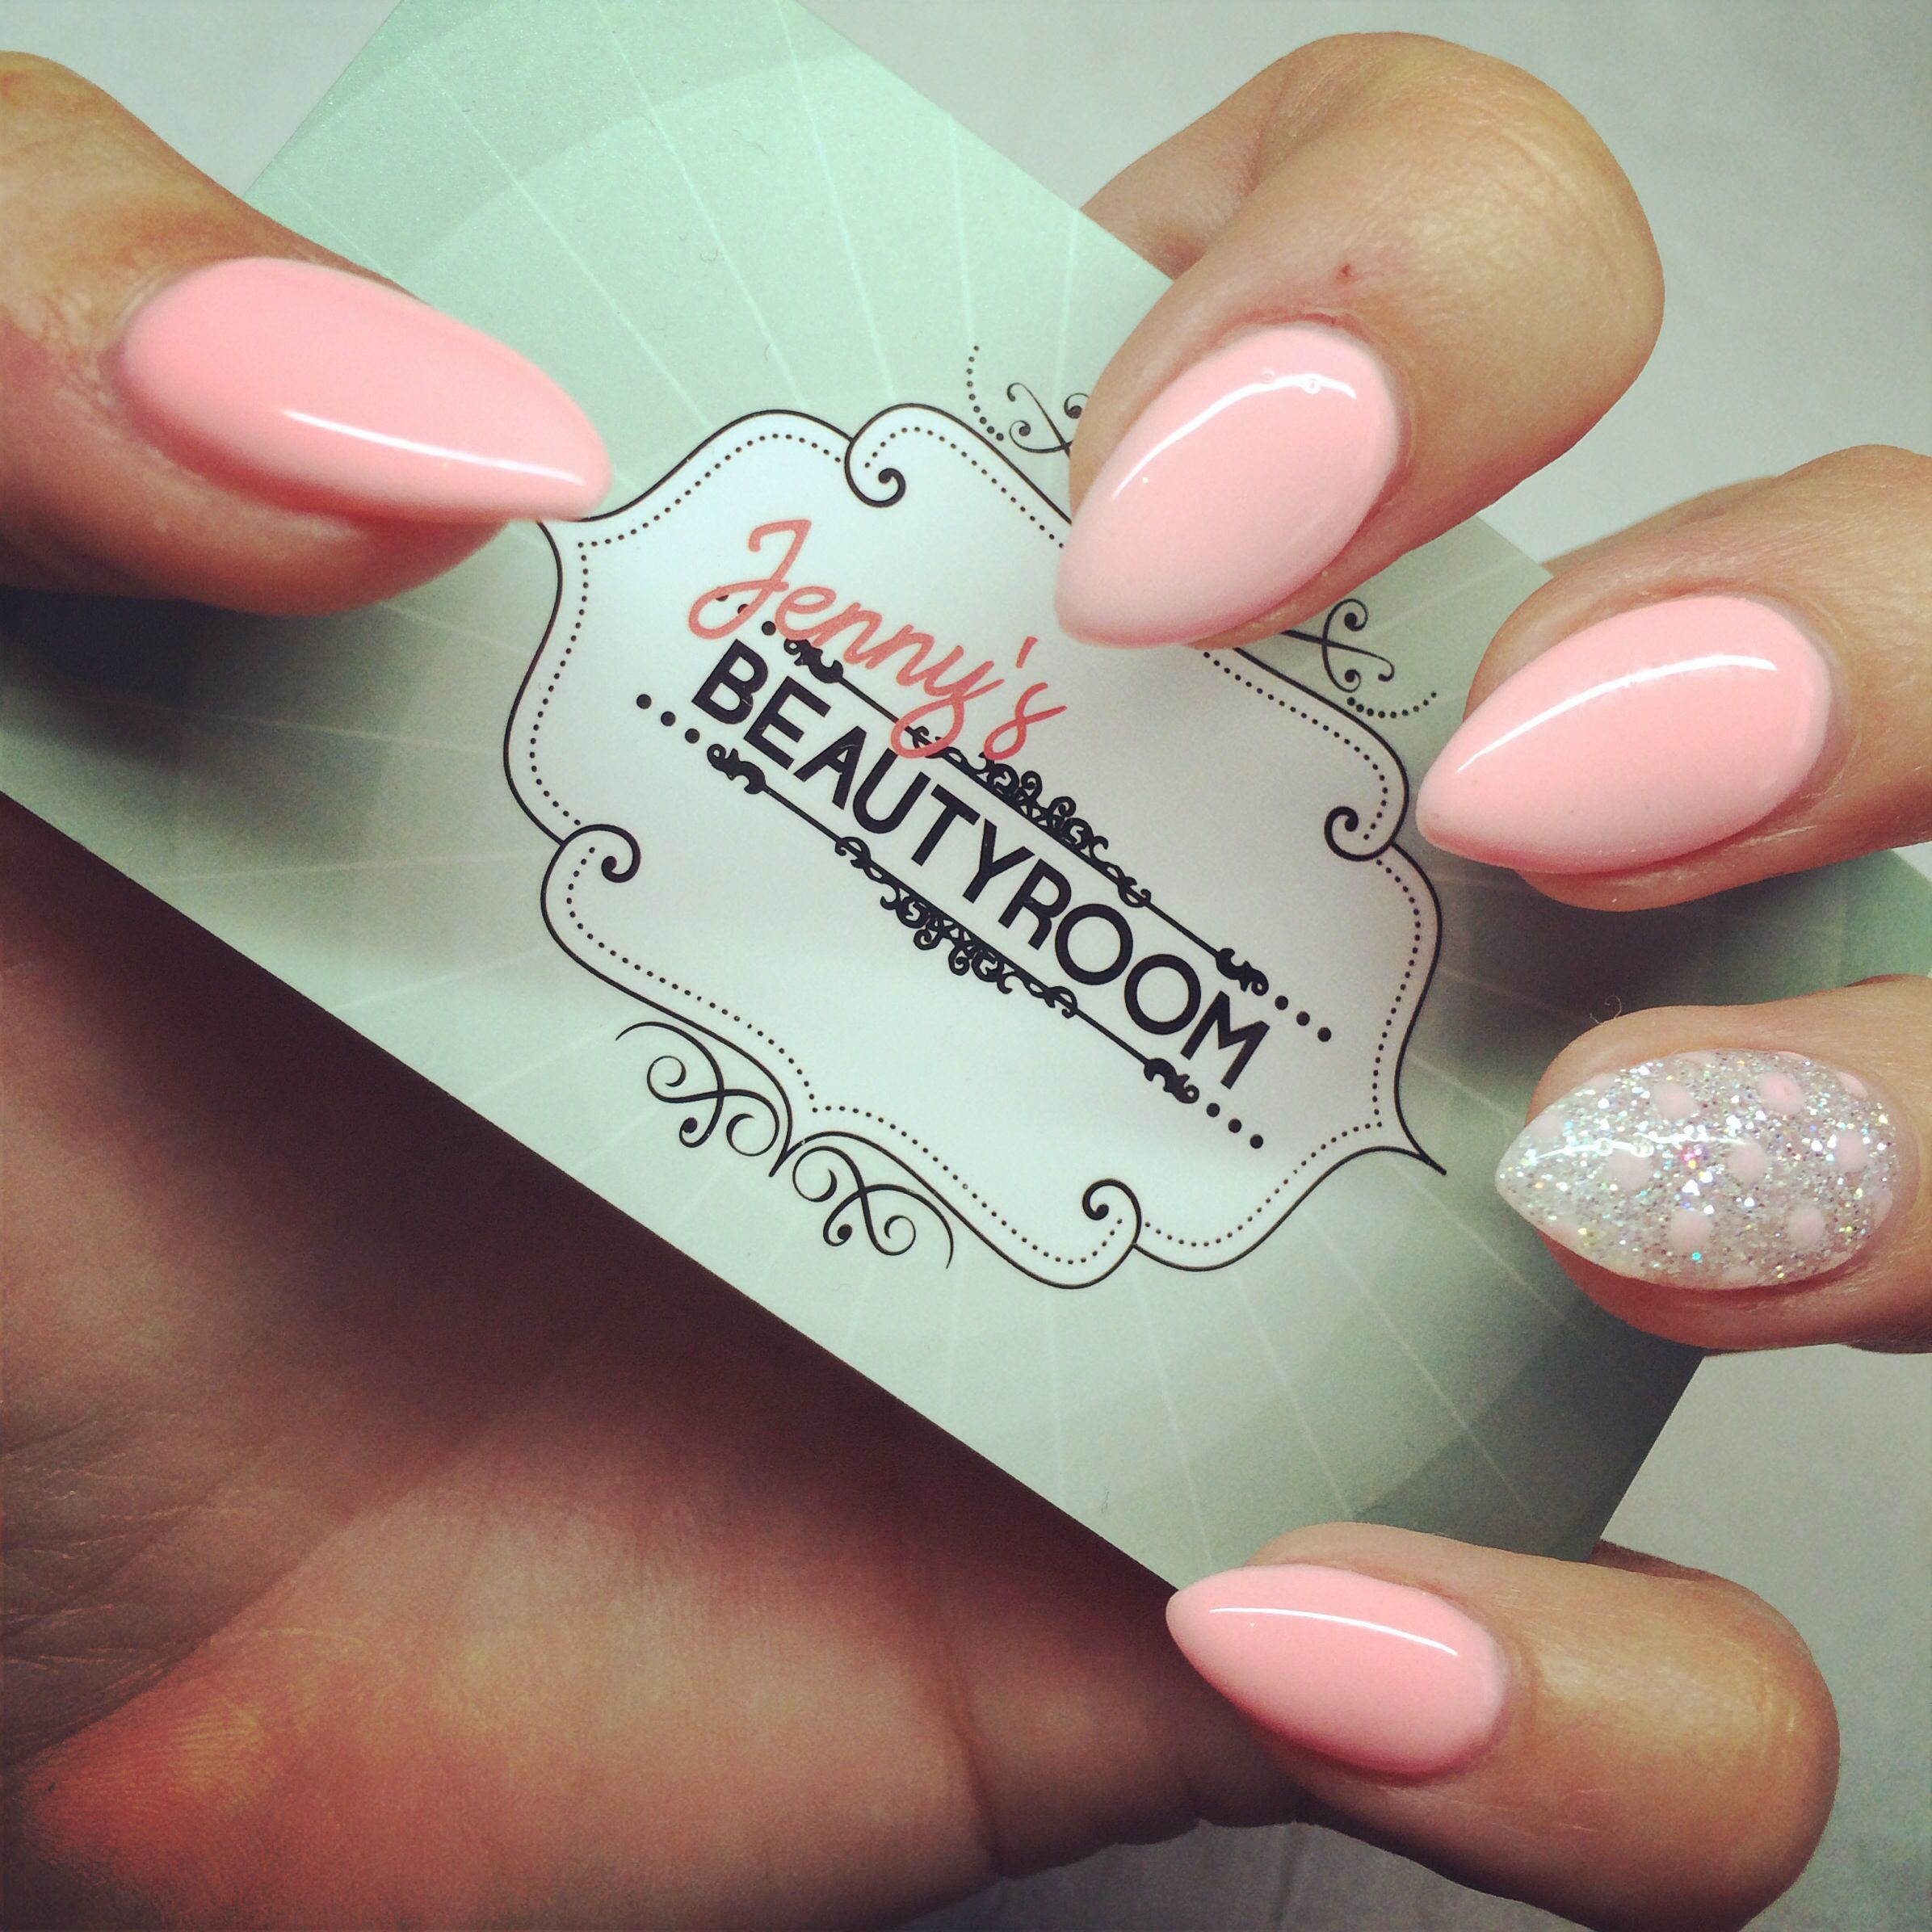 Summer gel nails www.jennysbeautyroom.com | Nails | Pinterest ...